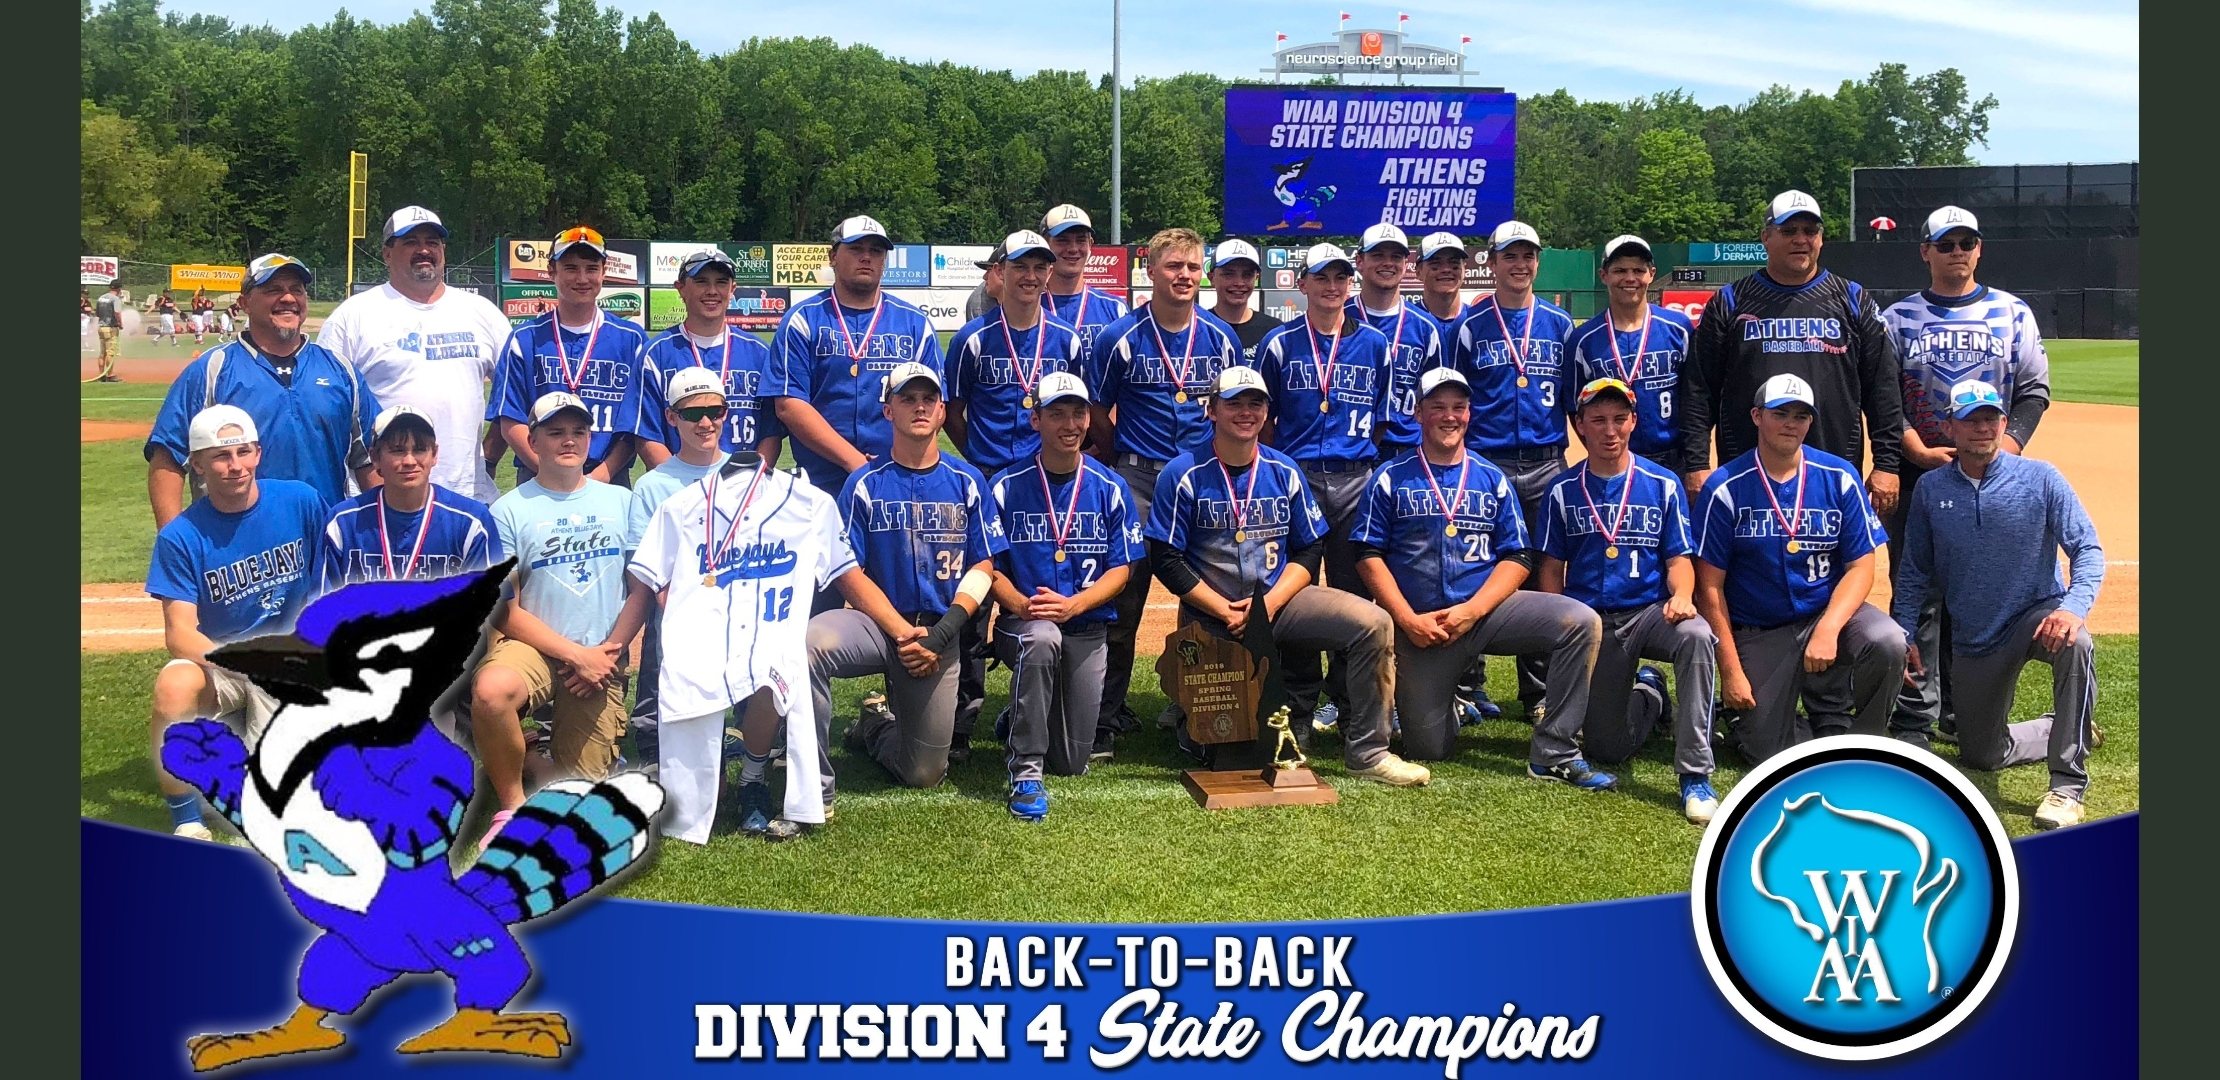 The State Champion Boys Baseball Team